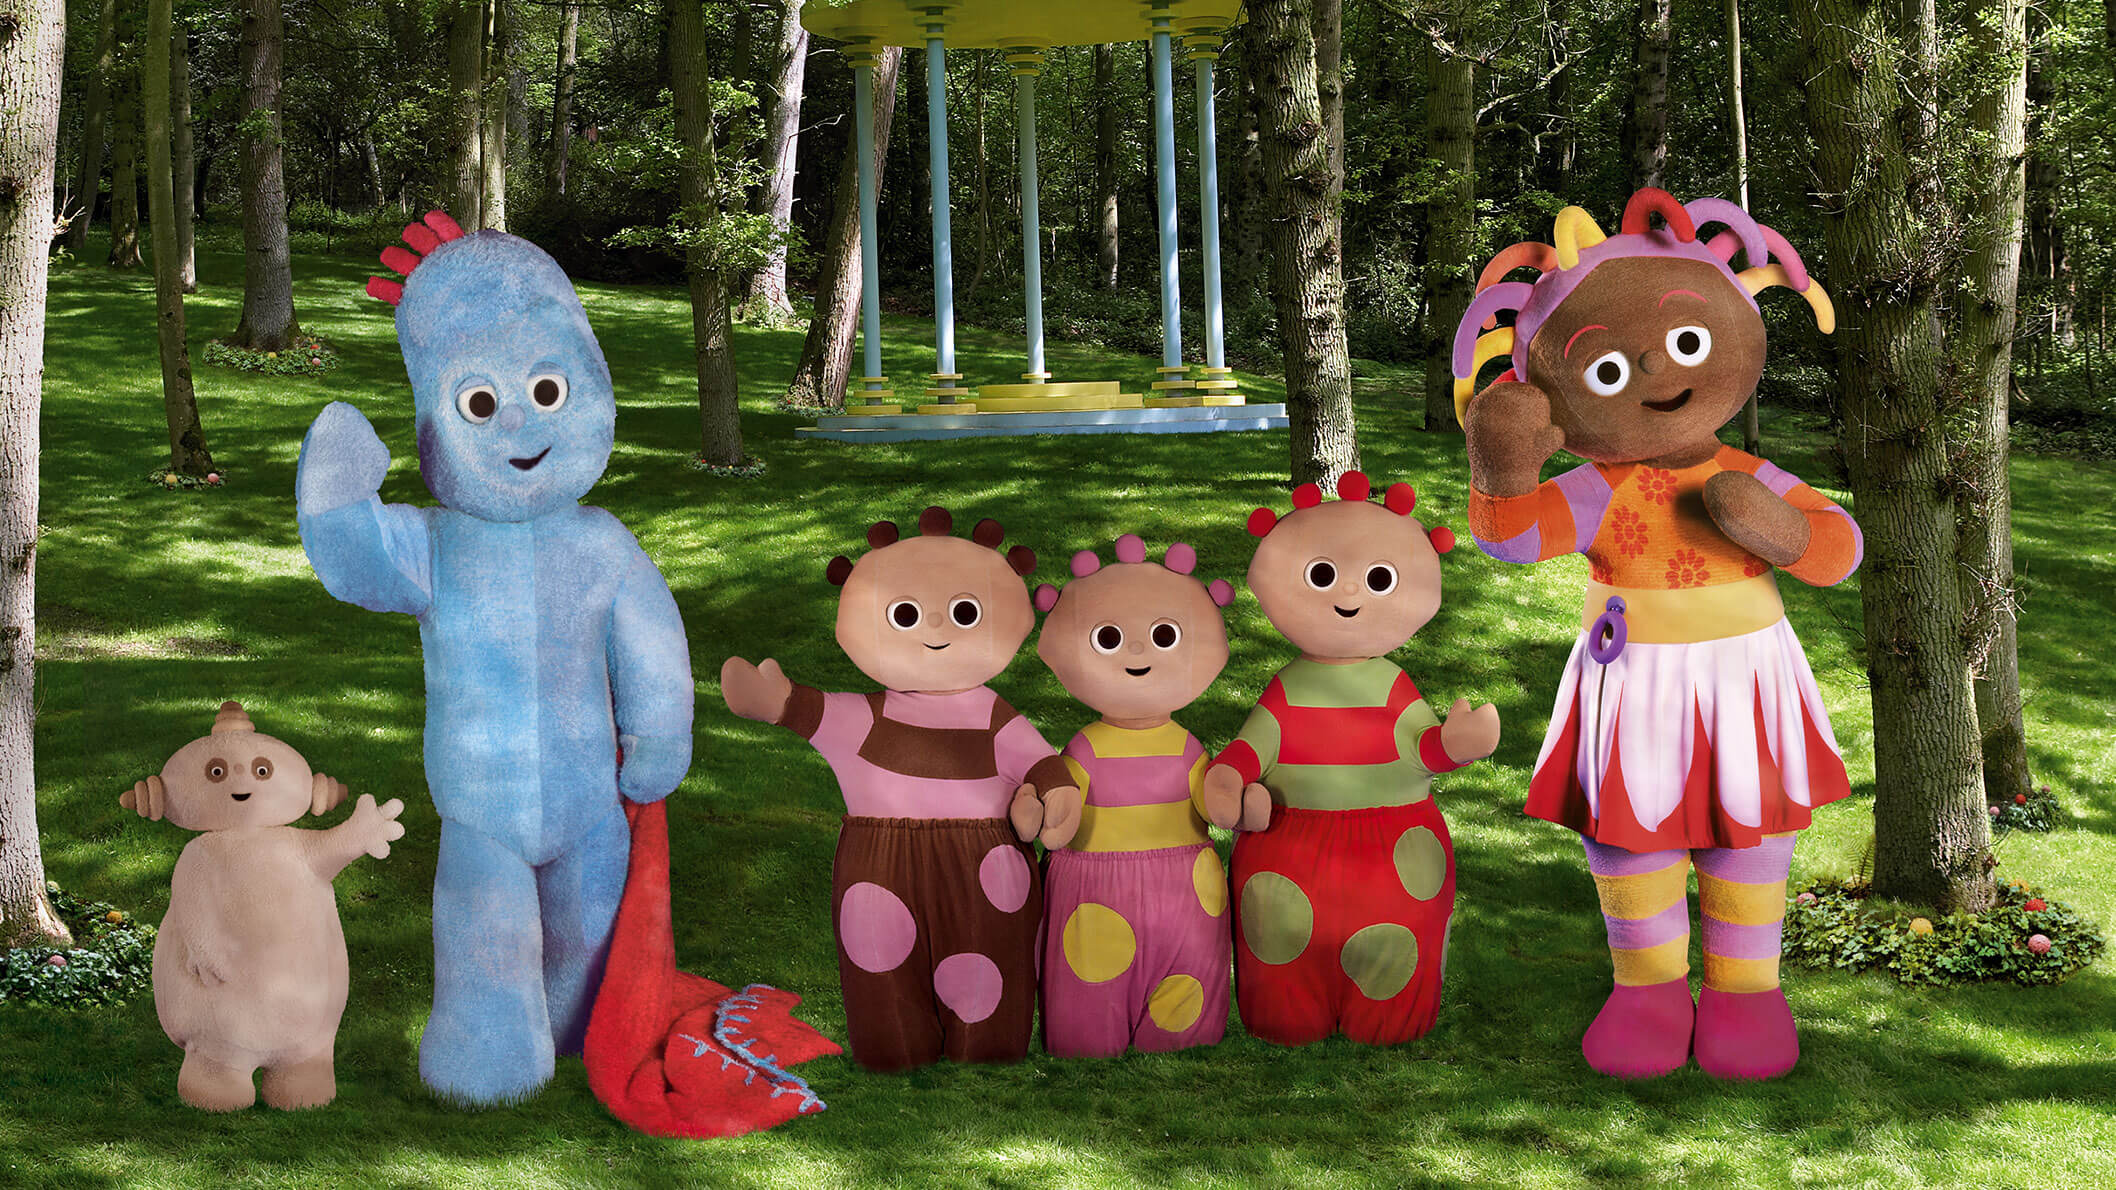 In the night garden for A night at the garden